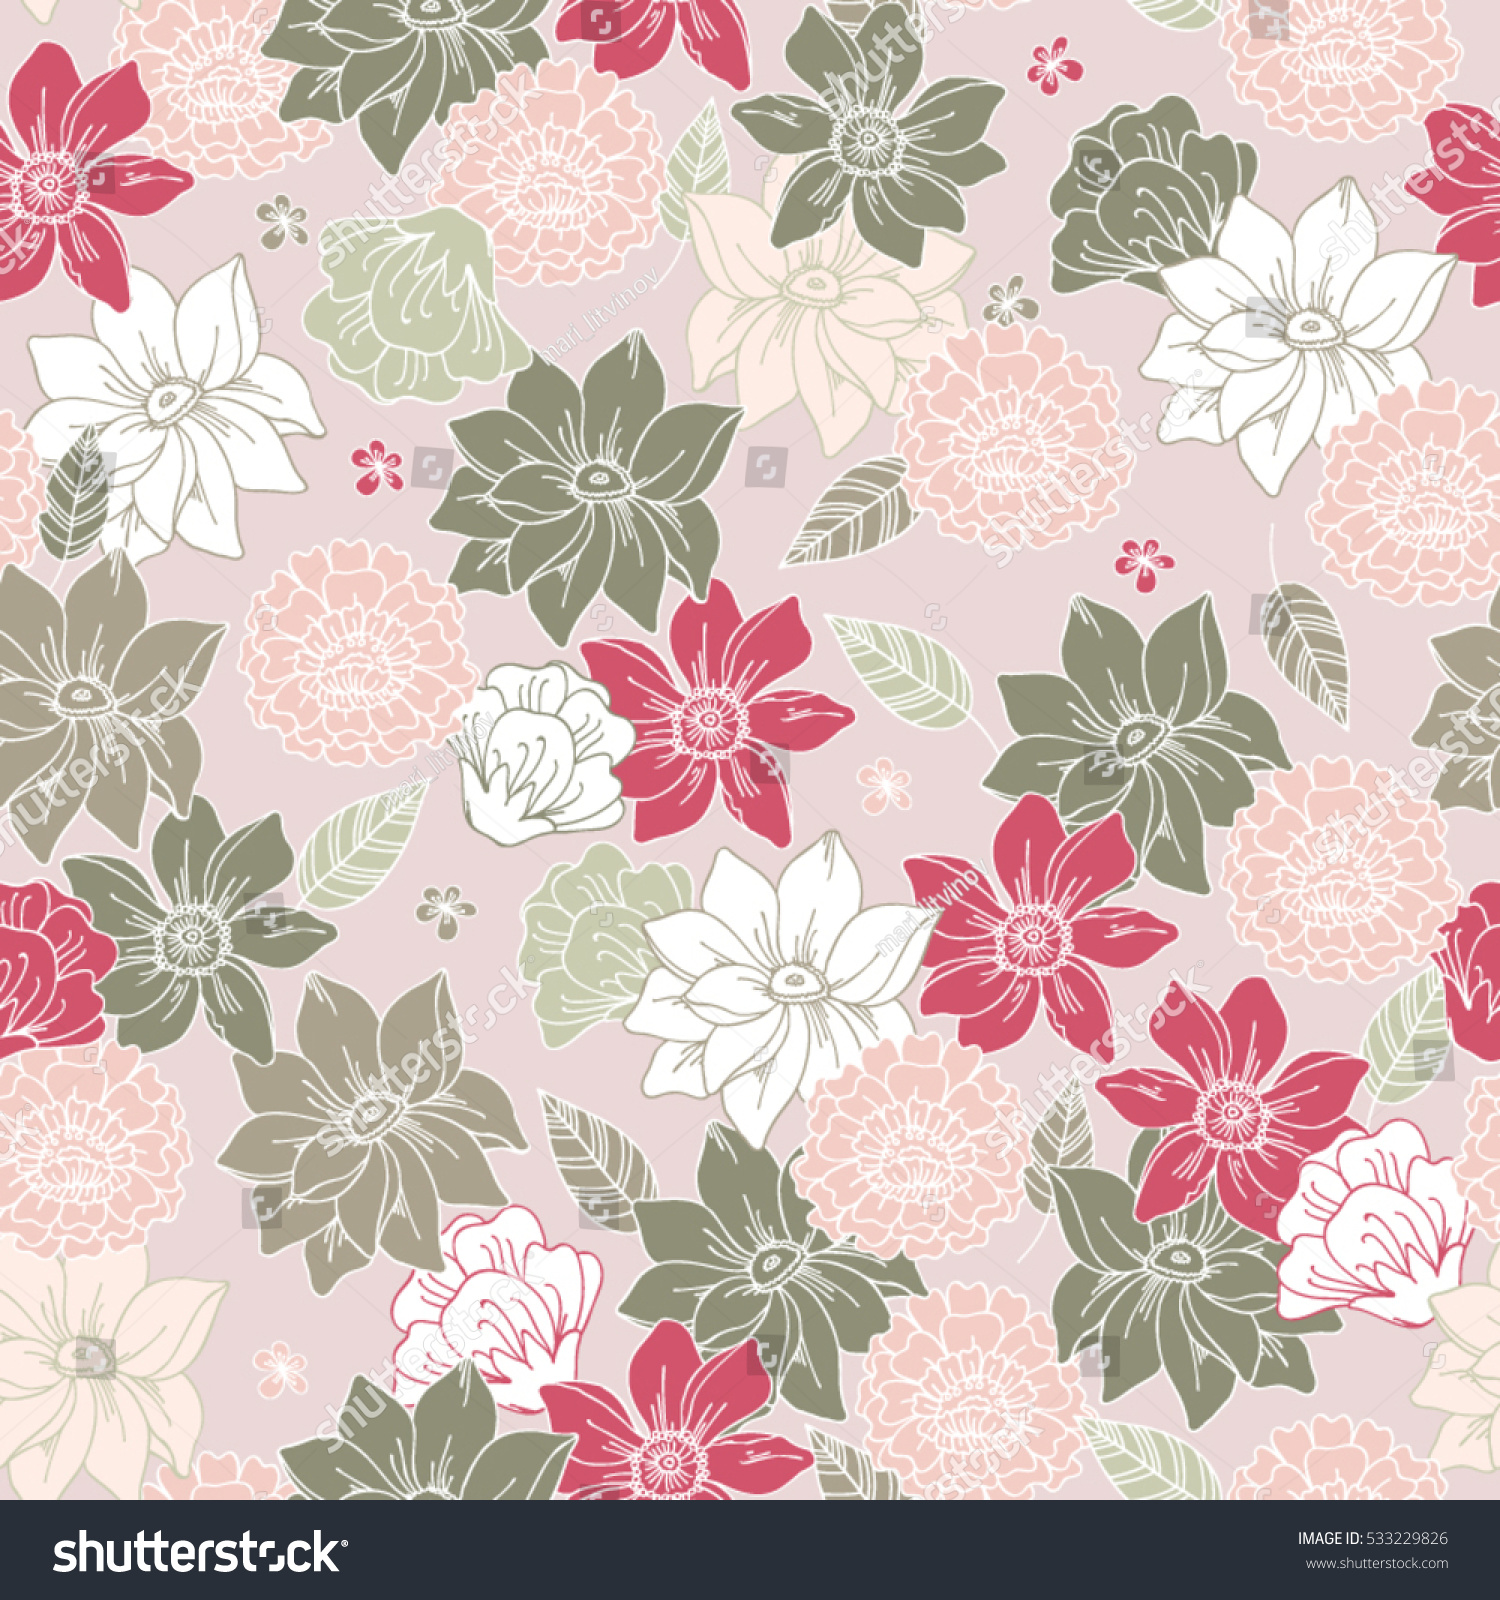 Pink floral seamless vector background floral hrysanthemum seamless - Floral Vector Seamless Pattern With Daisy Lilly Chrysanthemum Graphic Flowers Of Pale Pink